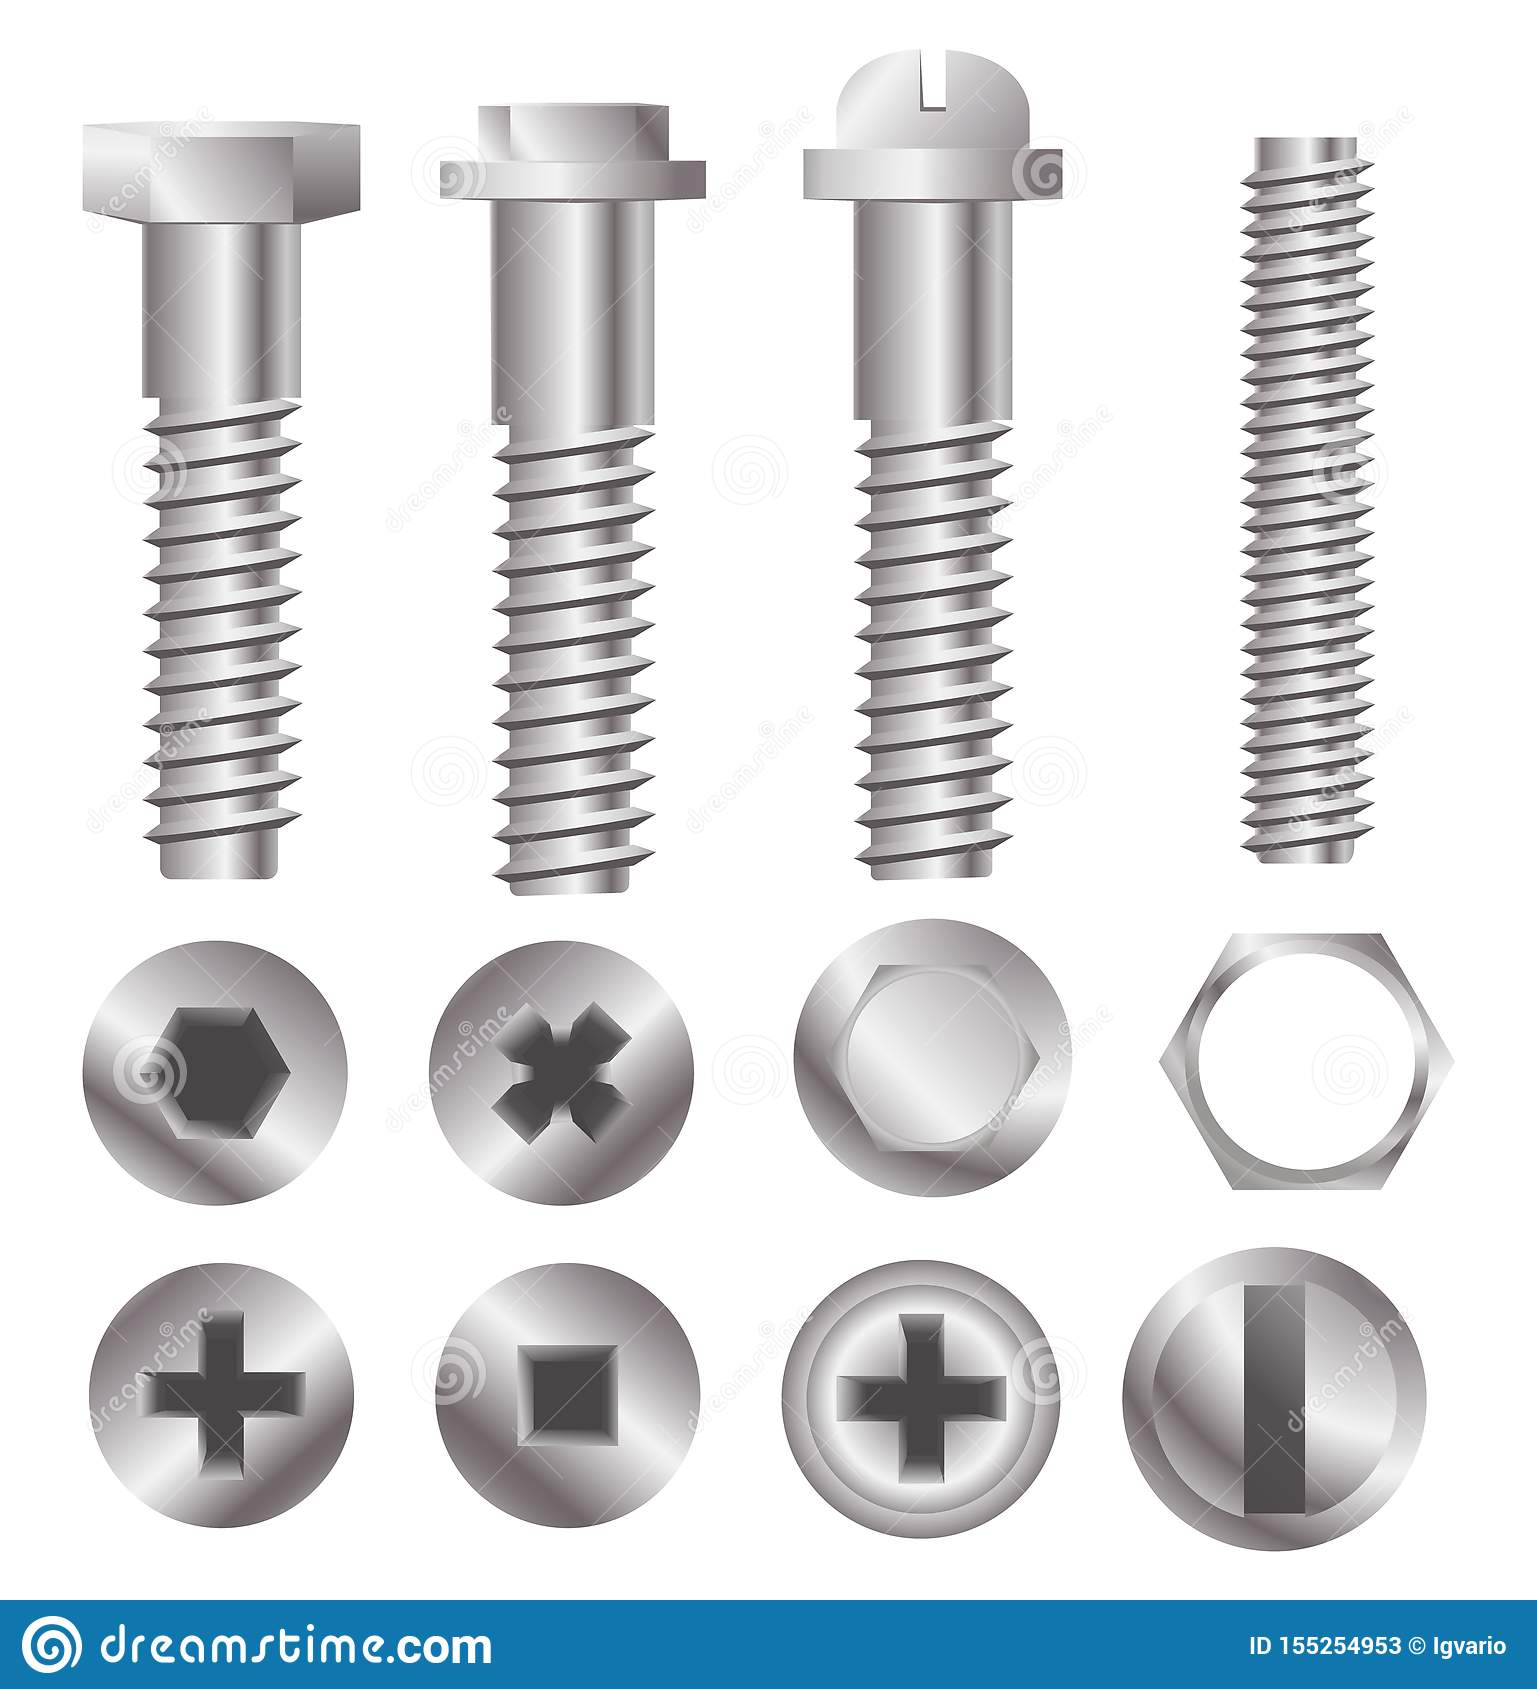 Bolt Heads Stock Illustrations 155 Bolt Heads Stock Illustrations Vectors Clipart Dreamstime